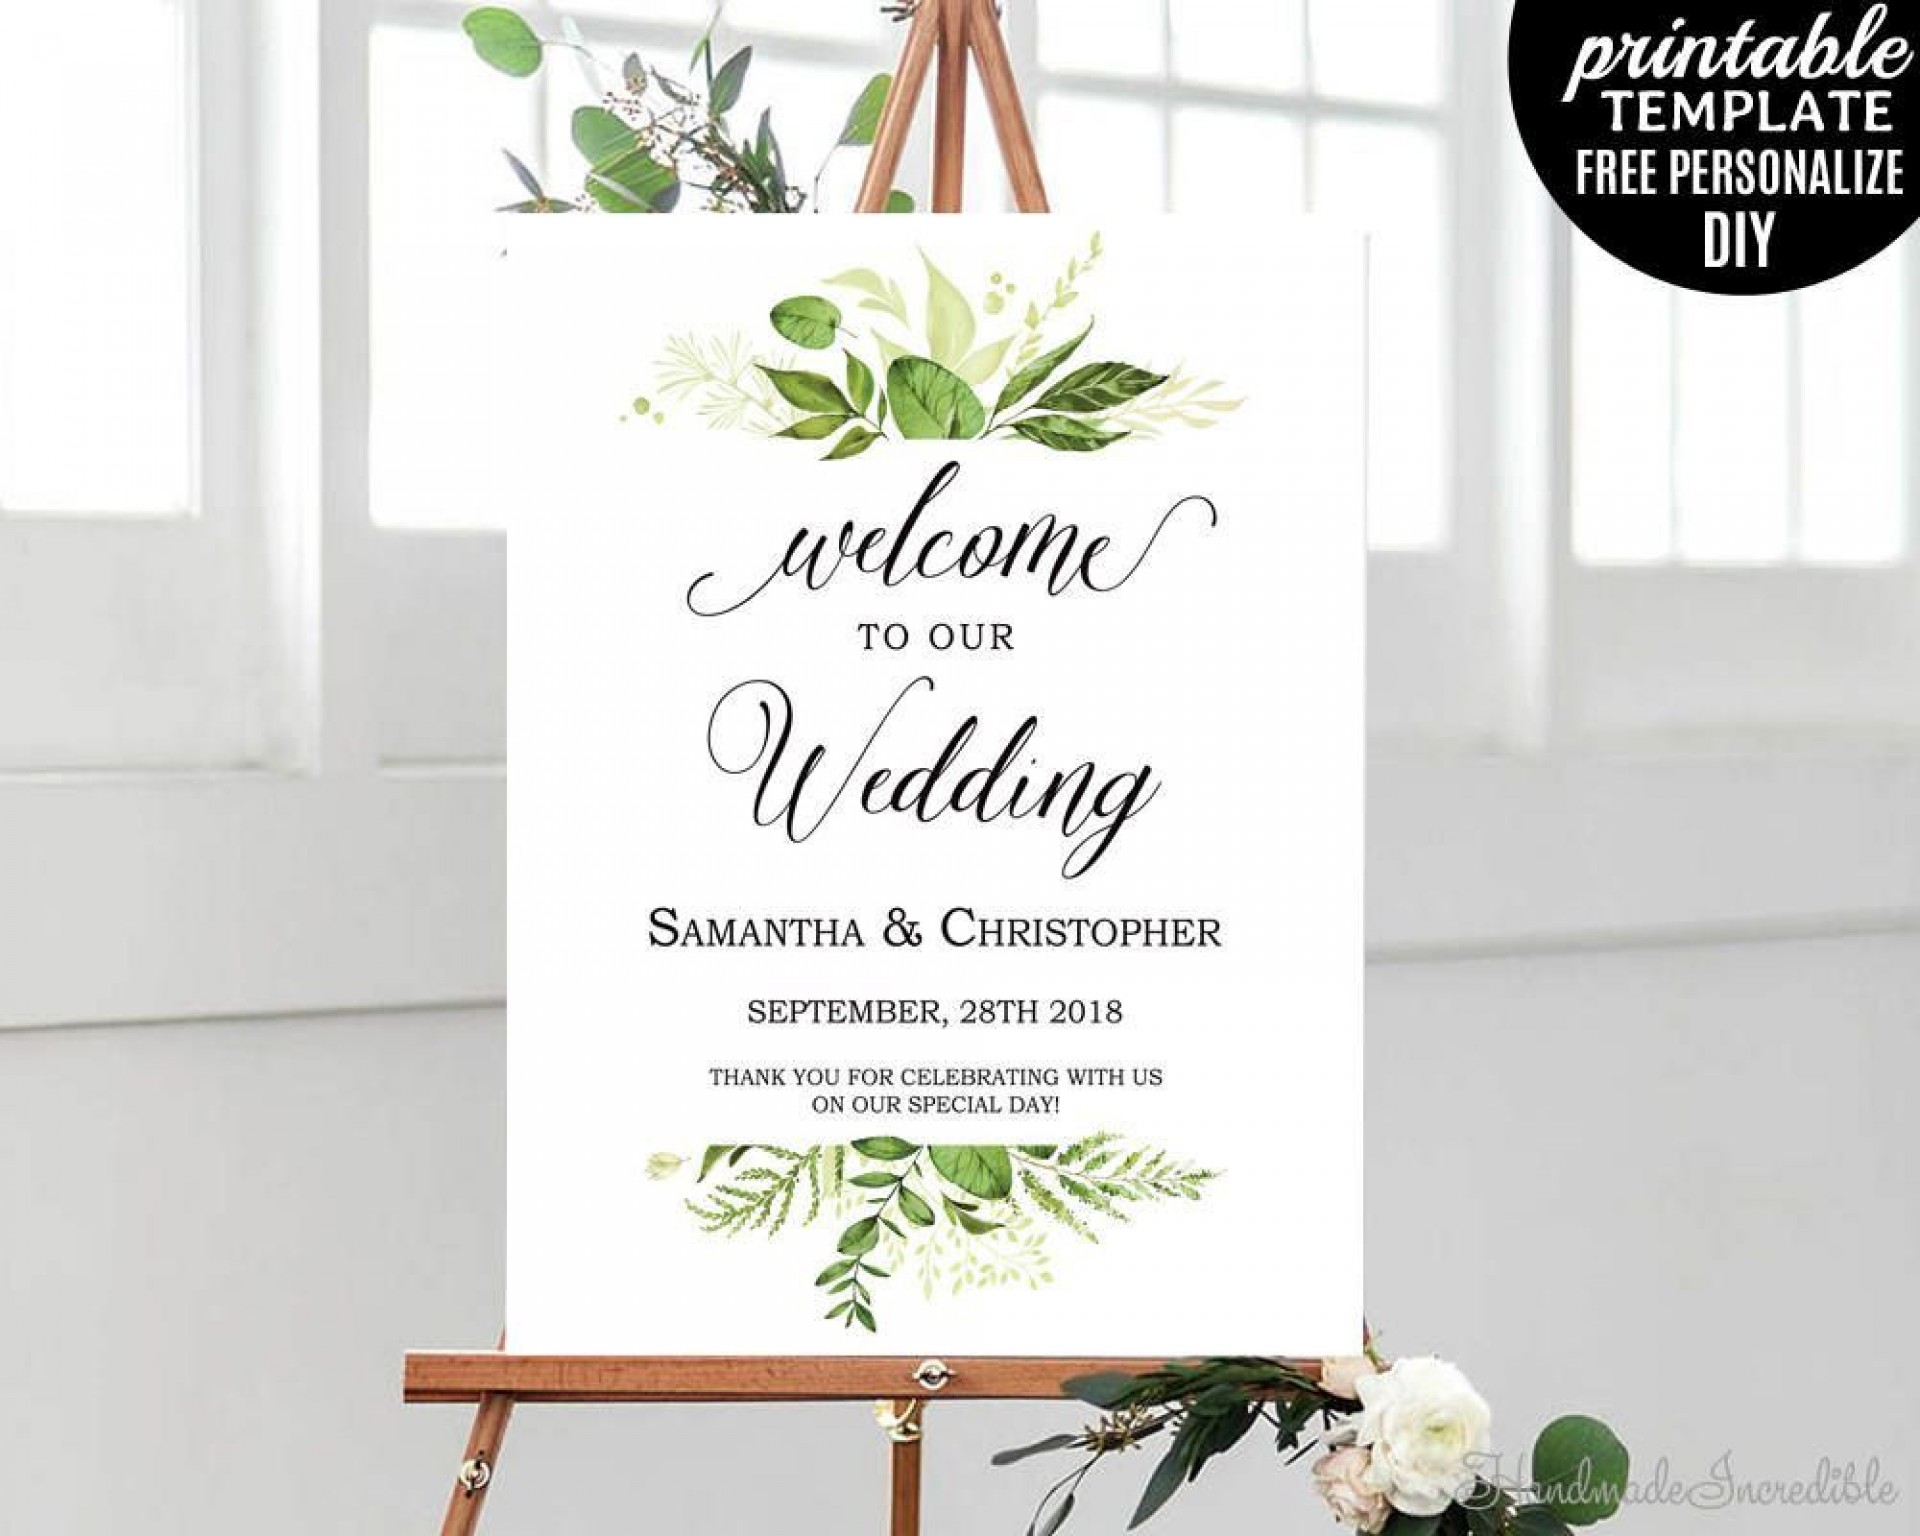 003 Impressive Wedding Welcome Sign Template Free High Definition 1920